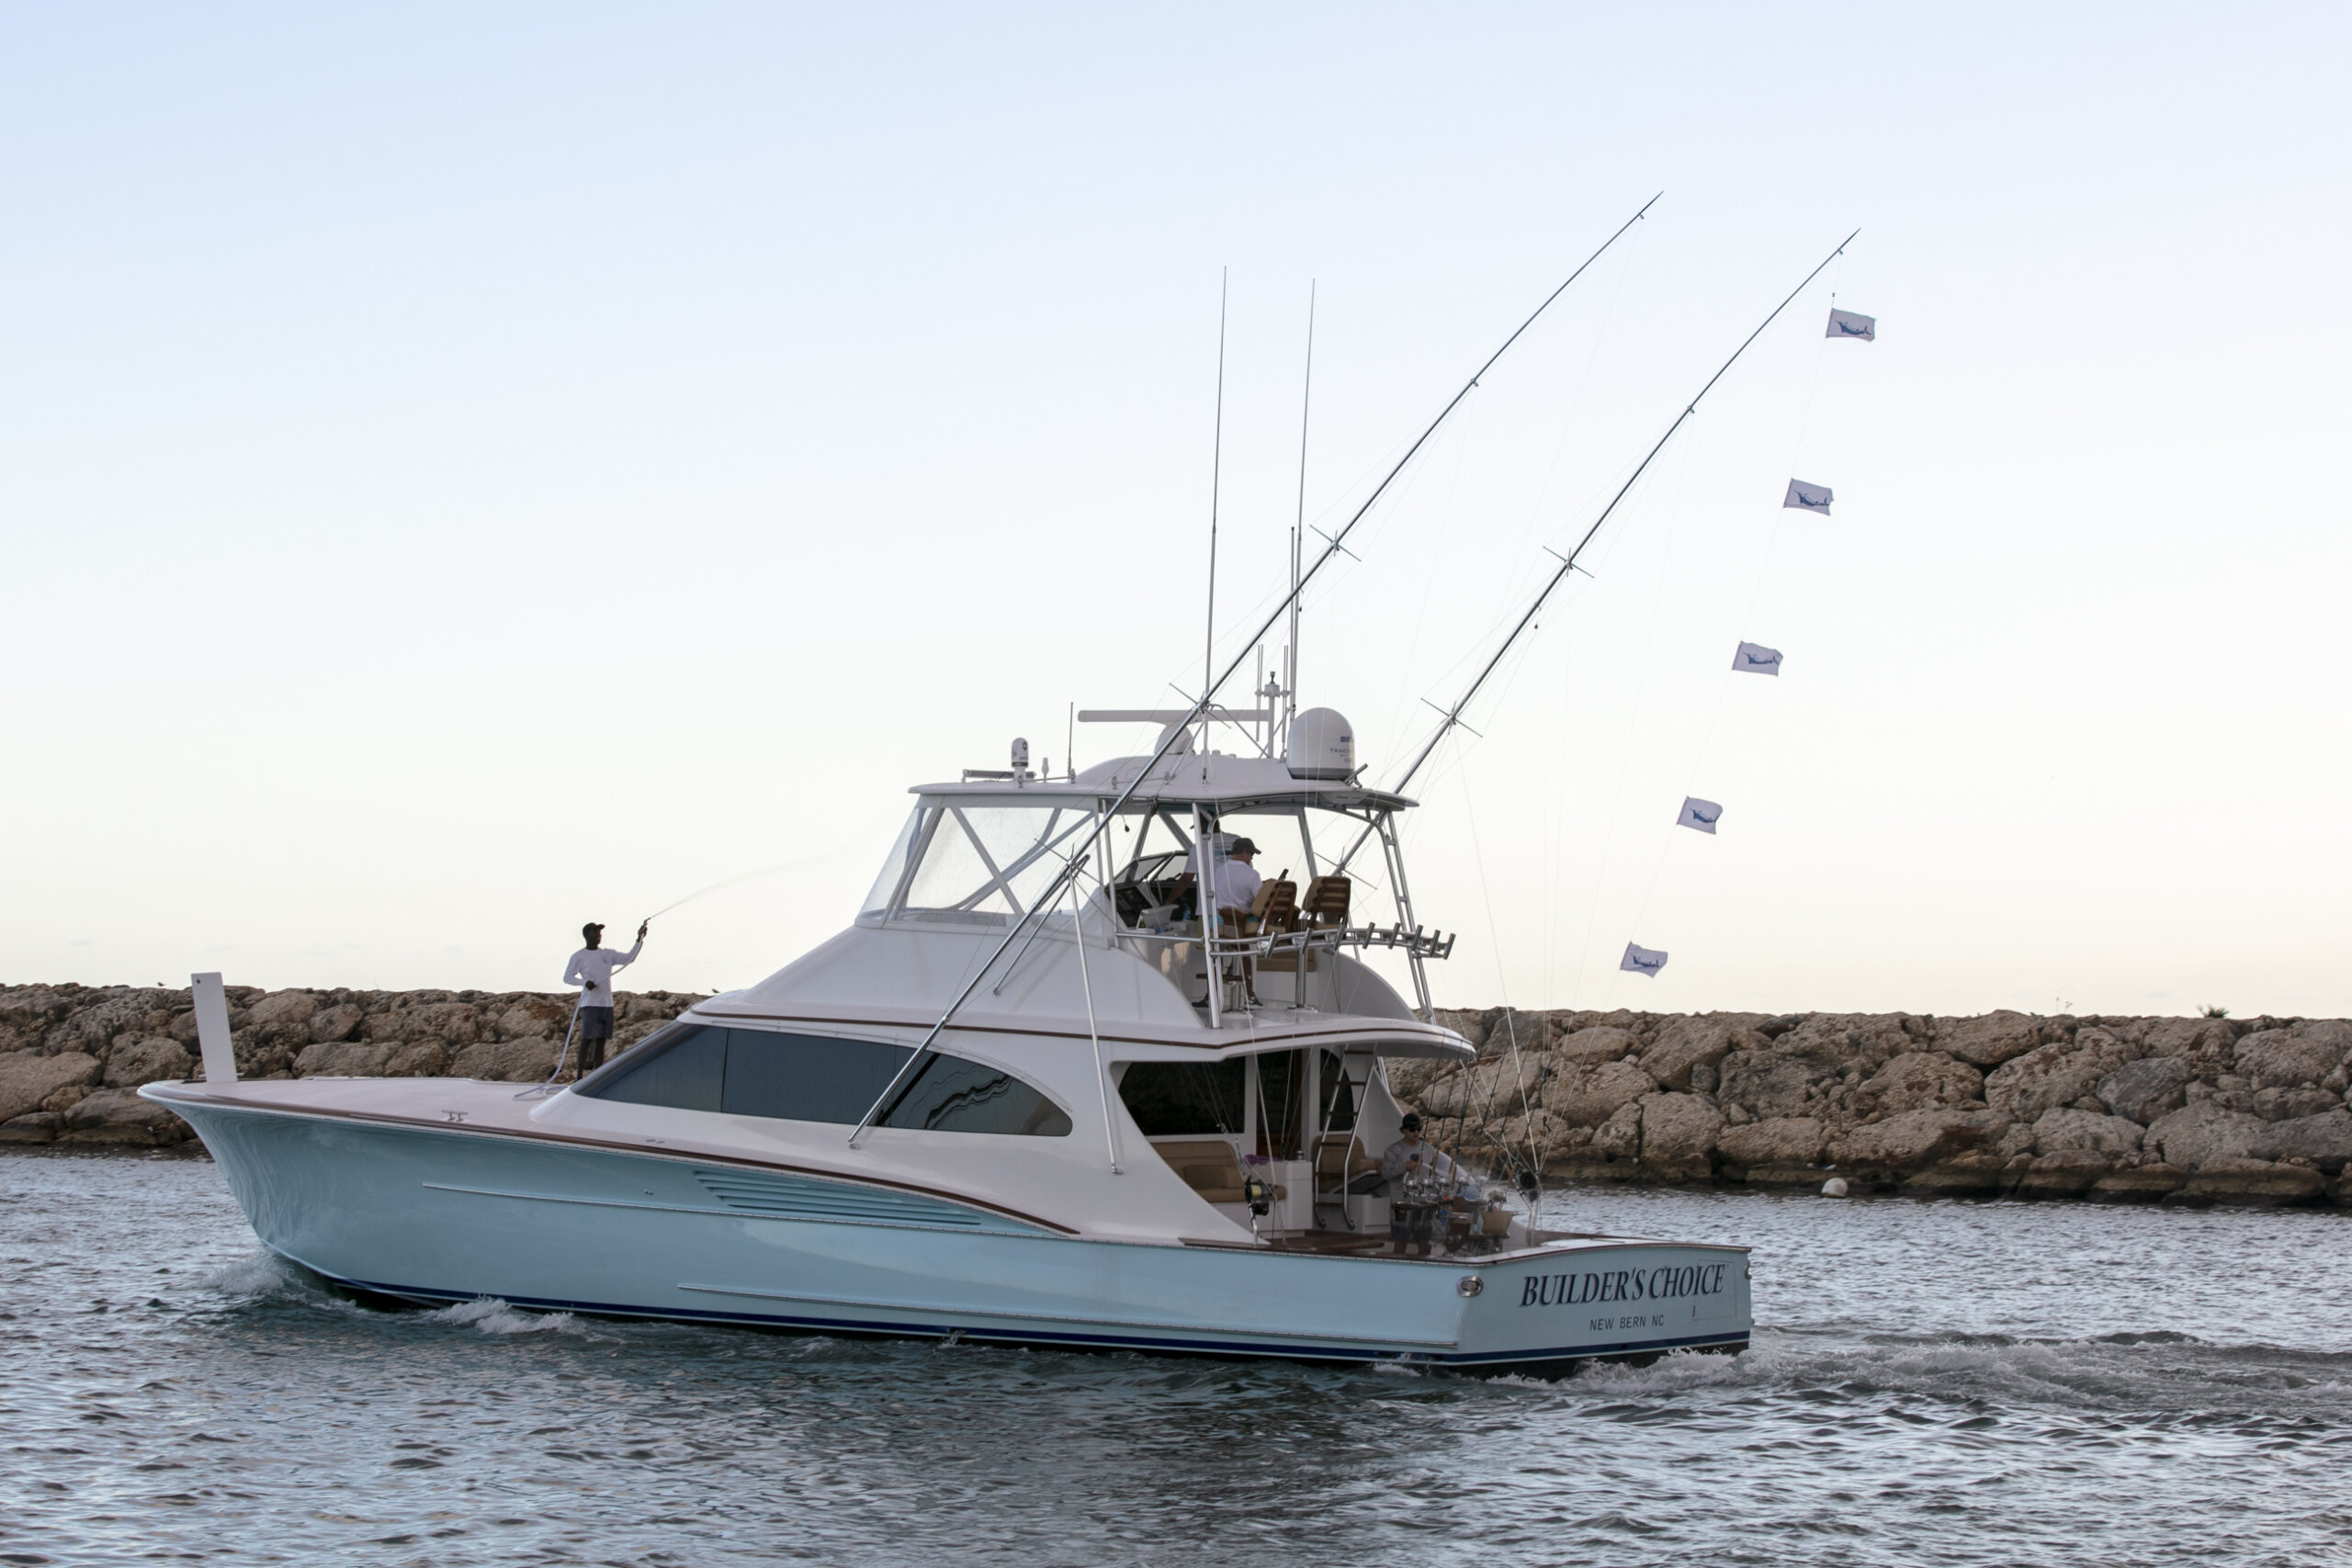 Builder's Choice, a 64 Jarrett Bay based in New Bern, took top honors at the third annual Marina Casa de Campo Open last week